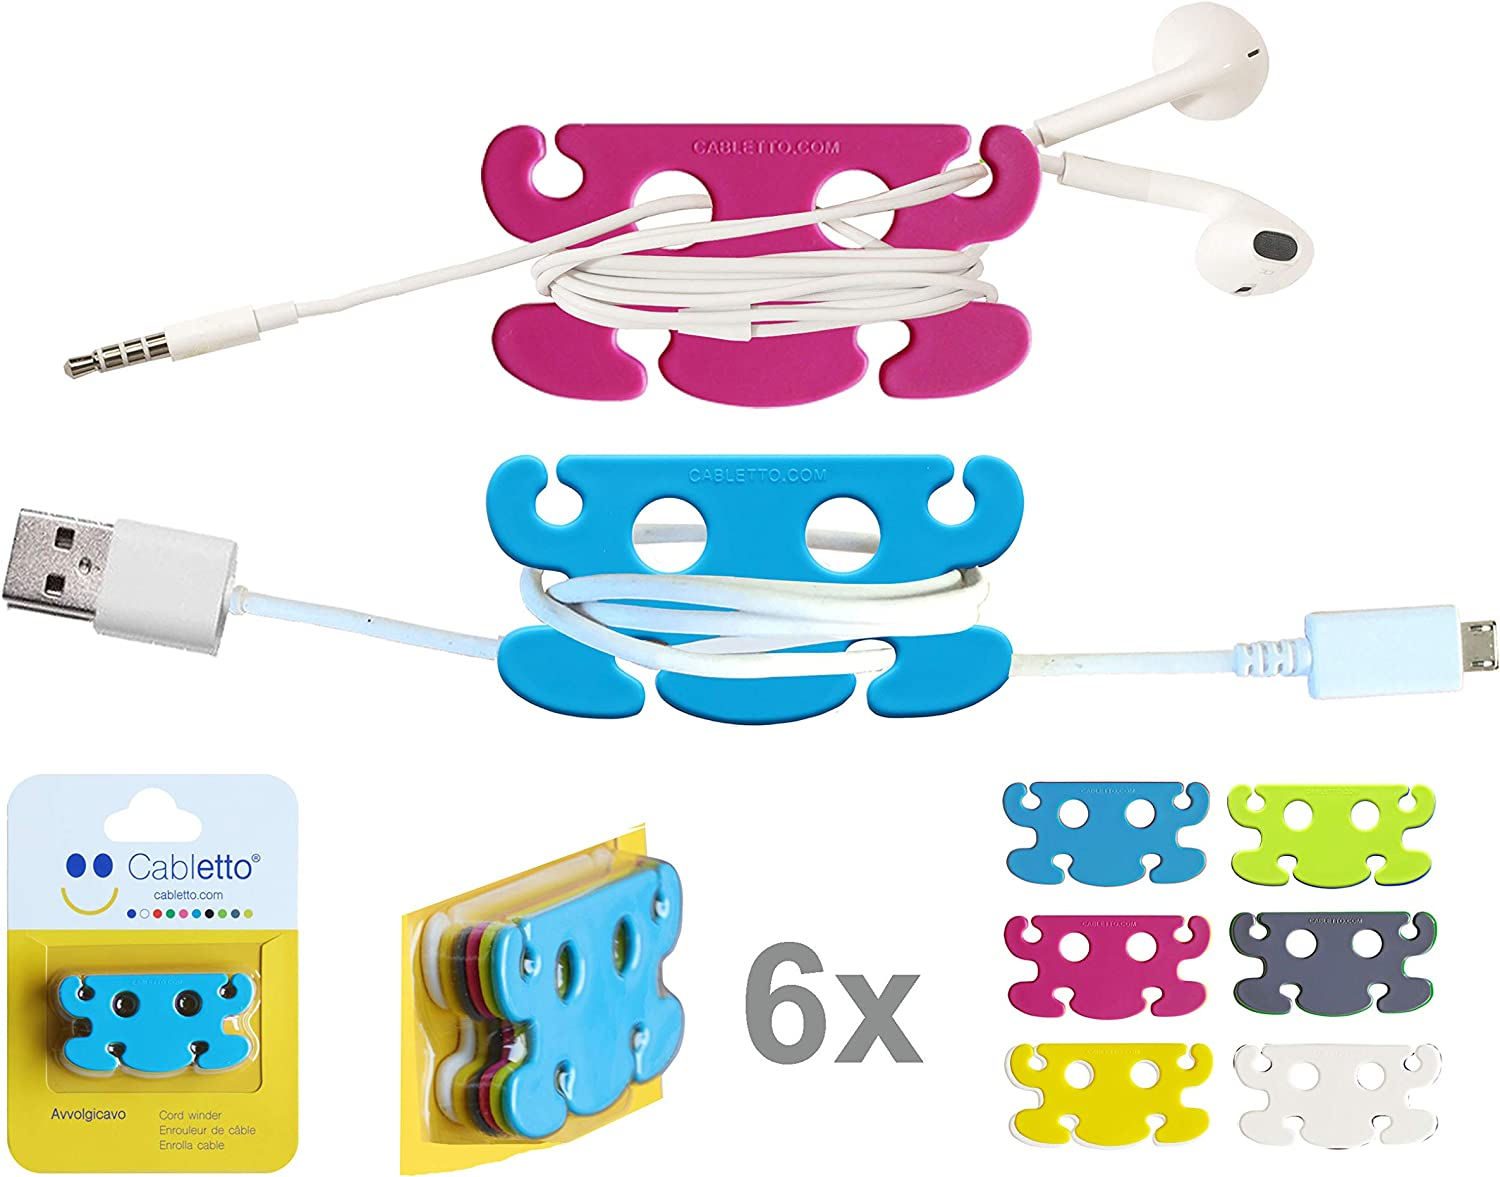 CABLETTO Cord Wrap Keeper and Organizer Earbud Holder Small Cable Winder Manager Shortener. Cables and Strings in Order in Your Pocket, Bag or Backpack, Drawers and containers. 6 pcs 1 Pack